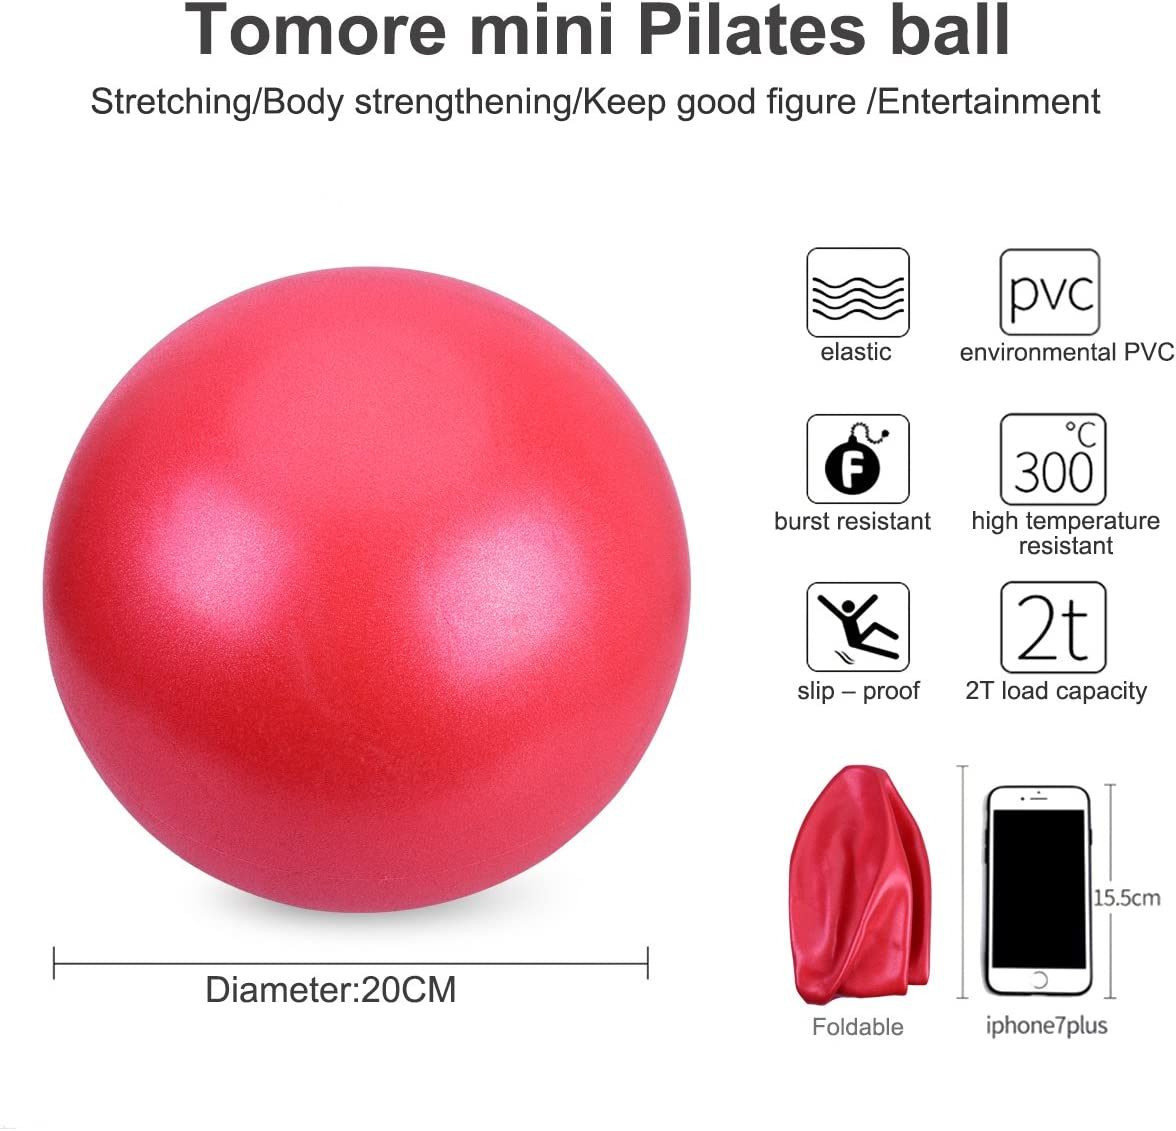 3cm Blue 10 OZUAR Mini Exercise Ball Pilates Ball for Stability Balance Fitness Gym Workout Barre Yoga Core Strength Training Physical Therapy Physical Relaxing Massage with Straw12.5